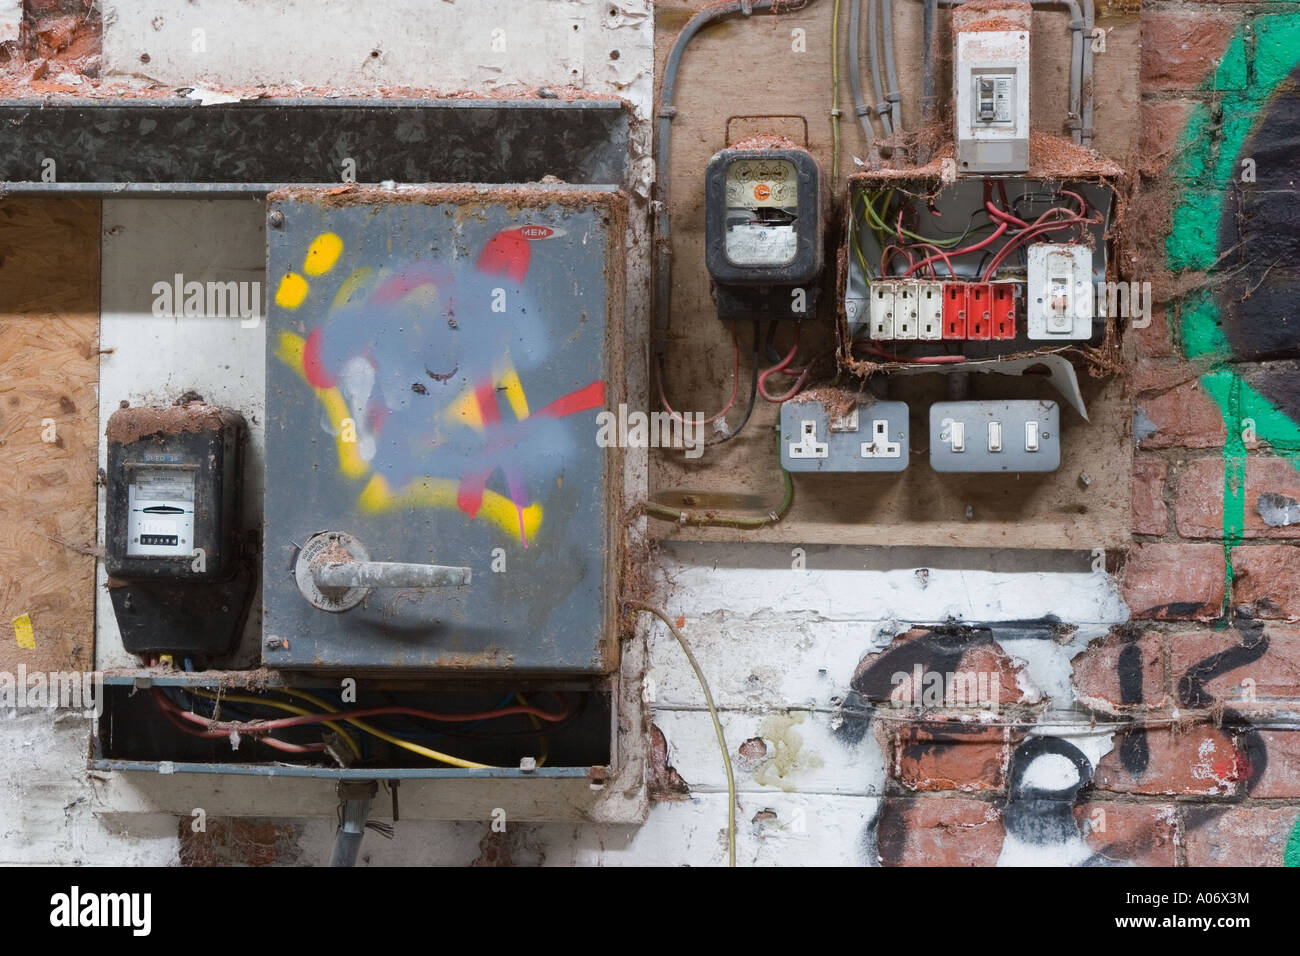 Old electrical installation fuse board and distribution board with wylex  switchgear. - Stock Image